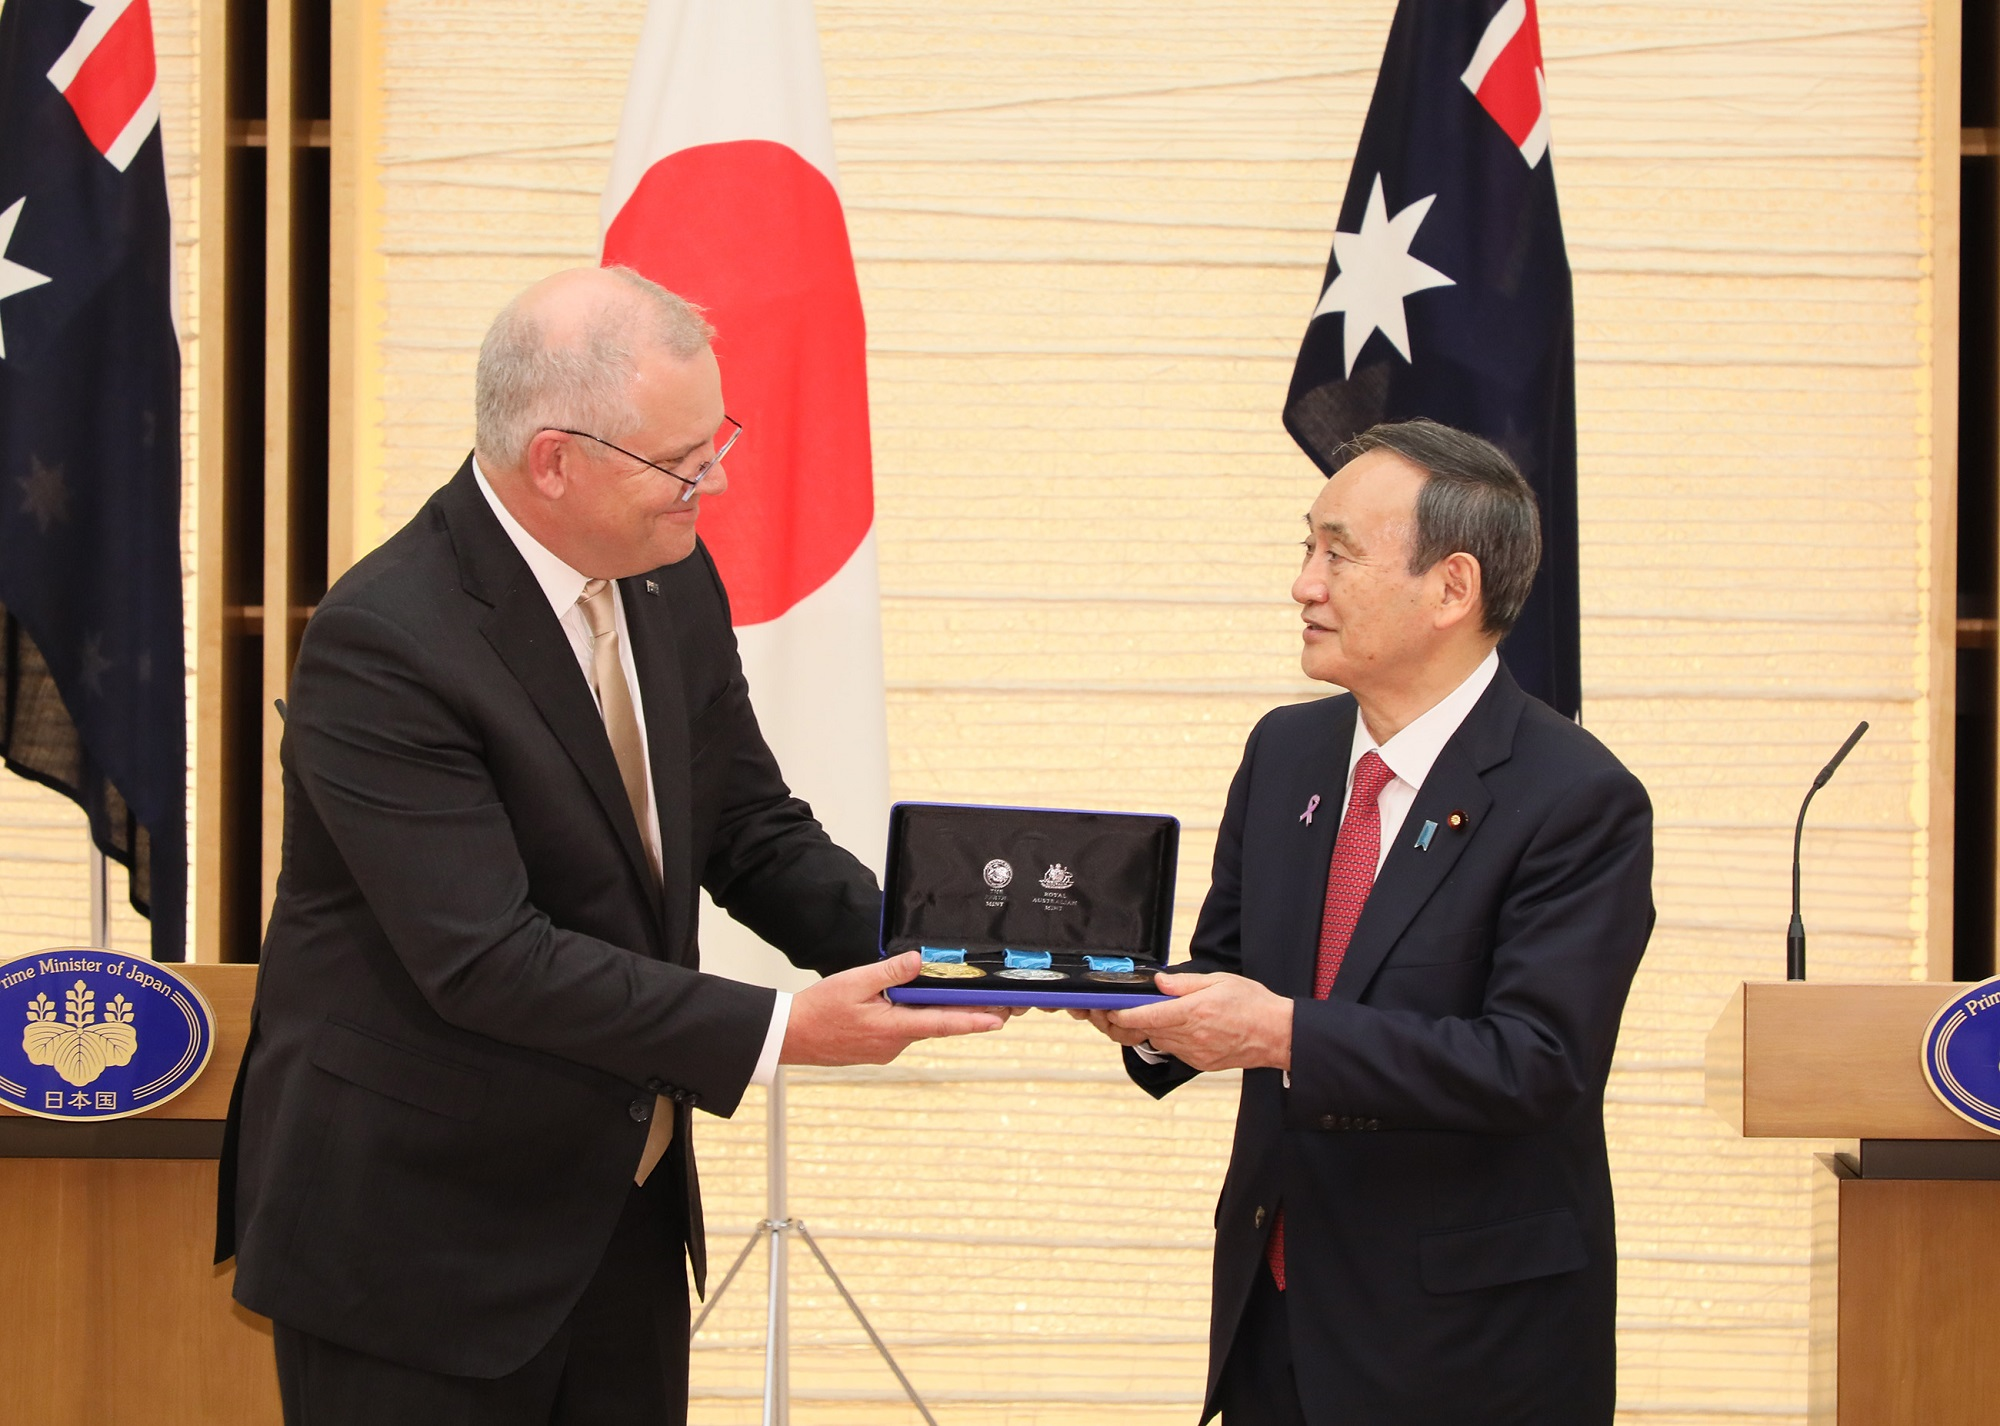 Photograph of the Prime Minister accepting a gift (1)